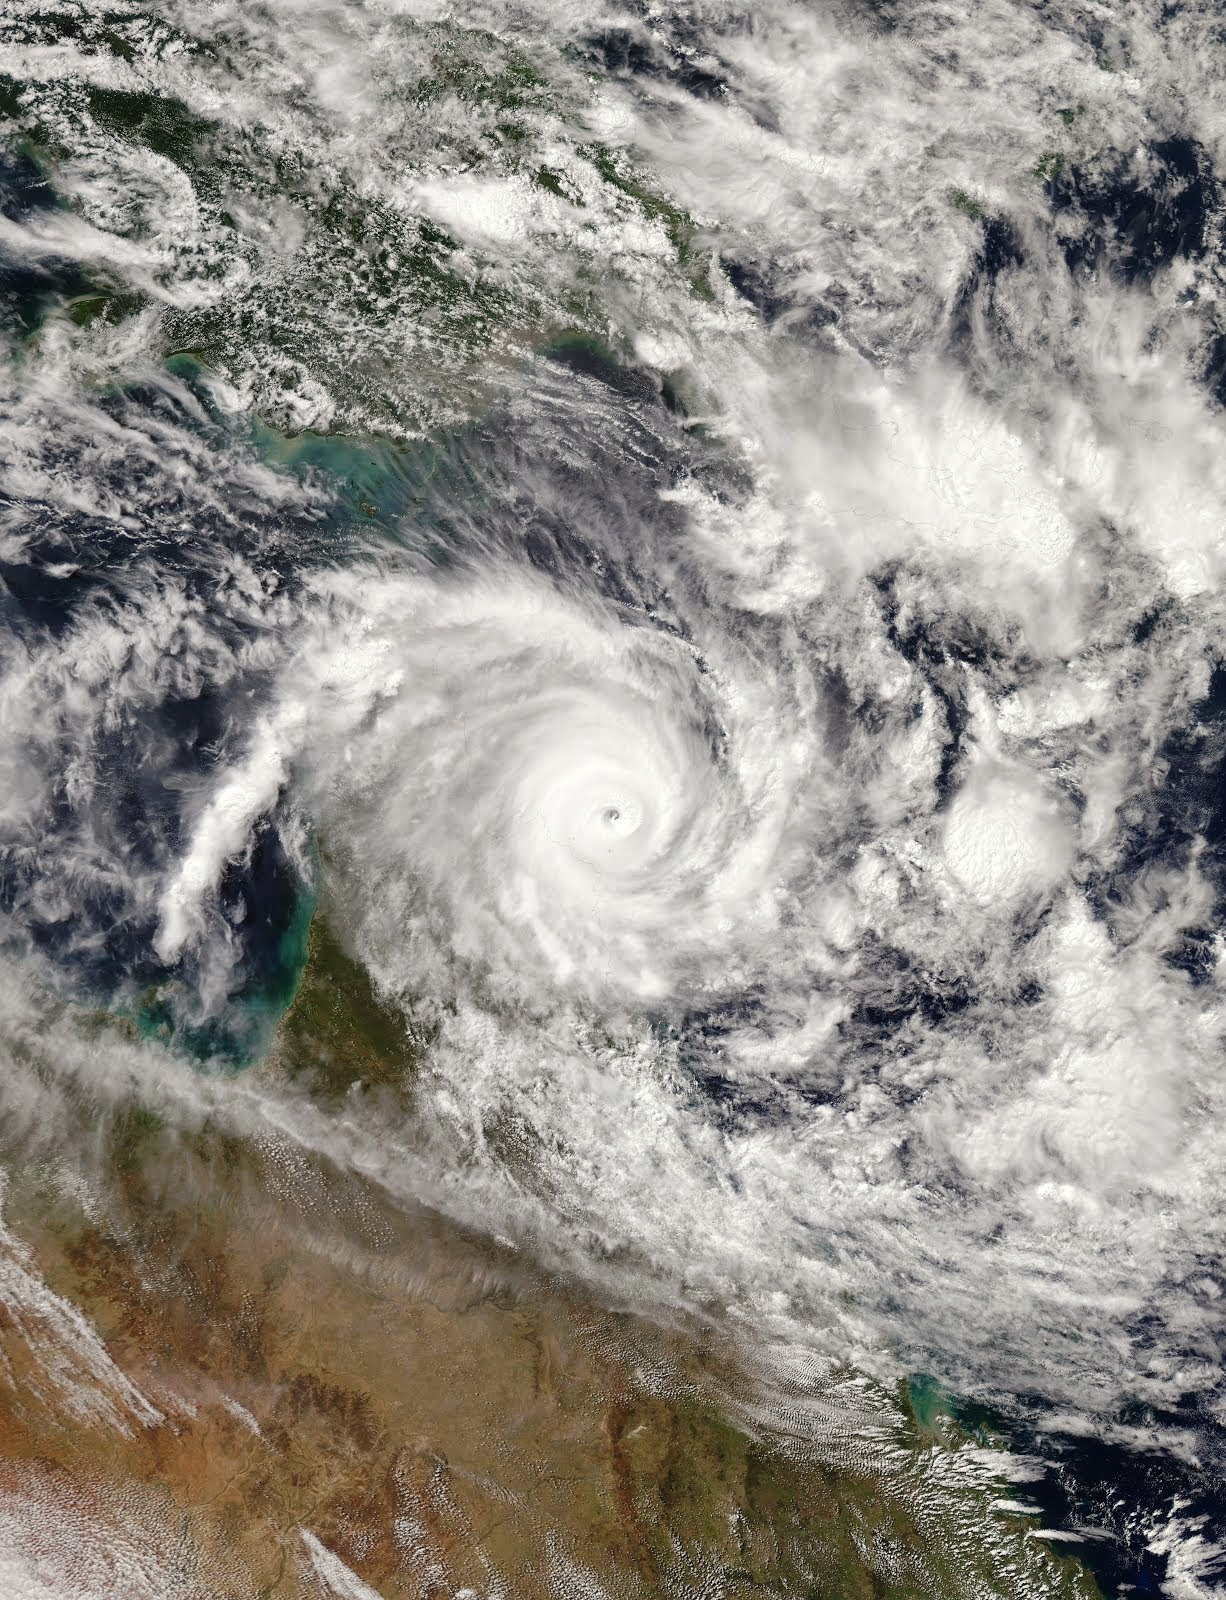 CYCLONE ITA MAKES LANDFALL IN QUEENSLAND, AUSTRALIA